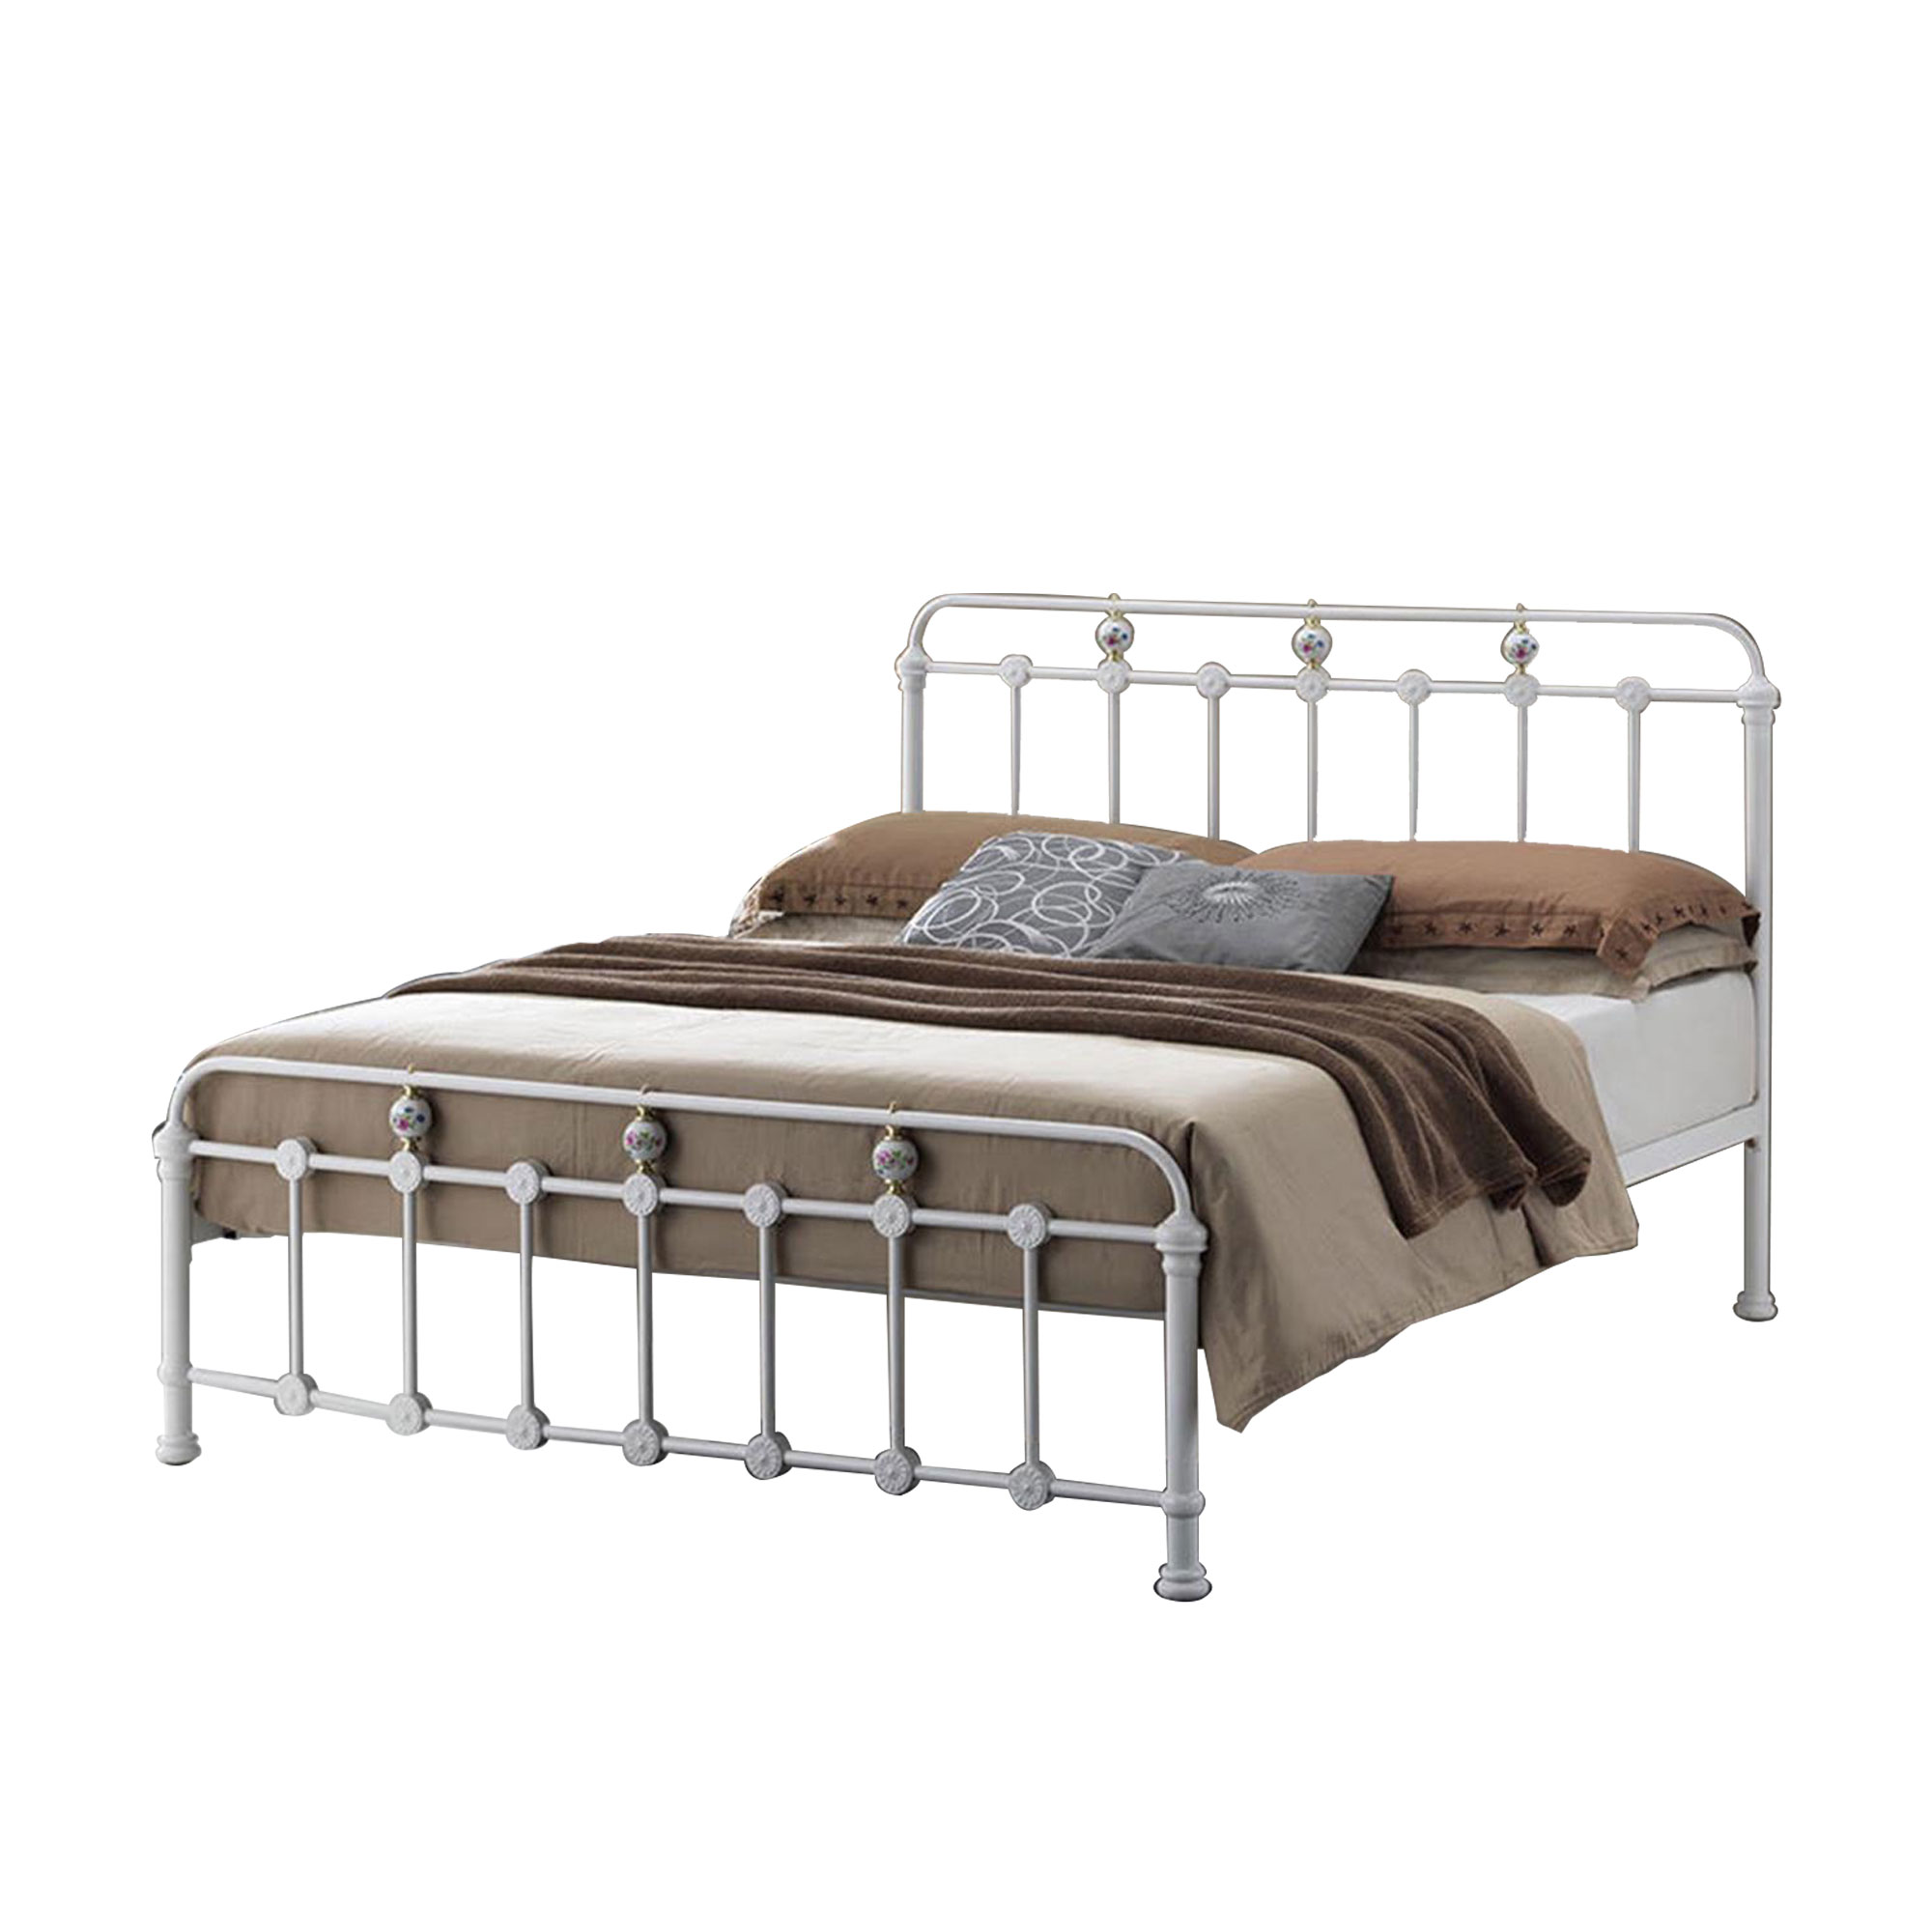 M541 Queen Metal Bedframe